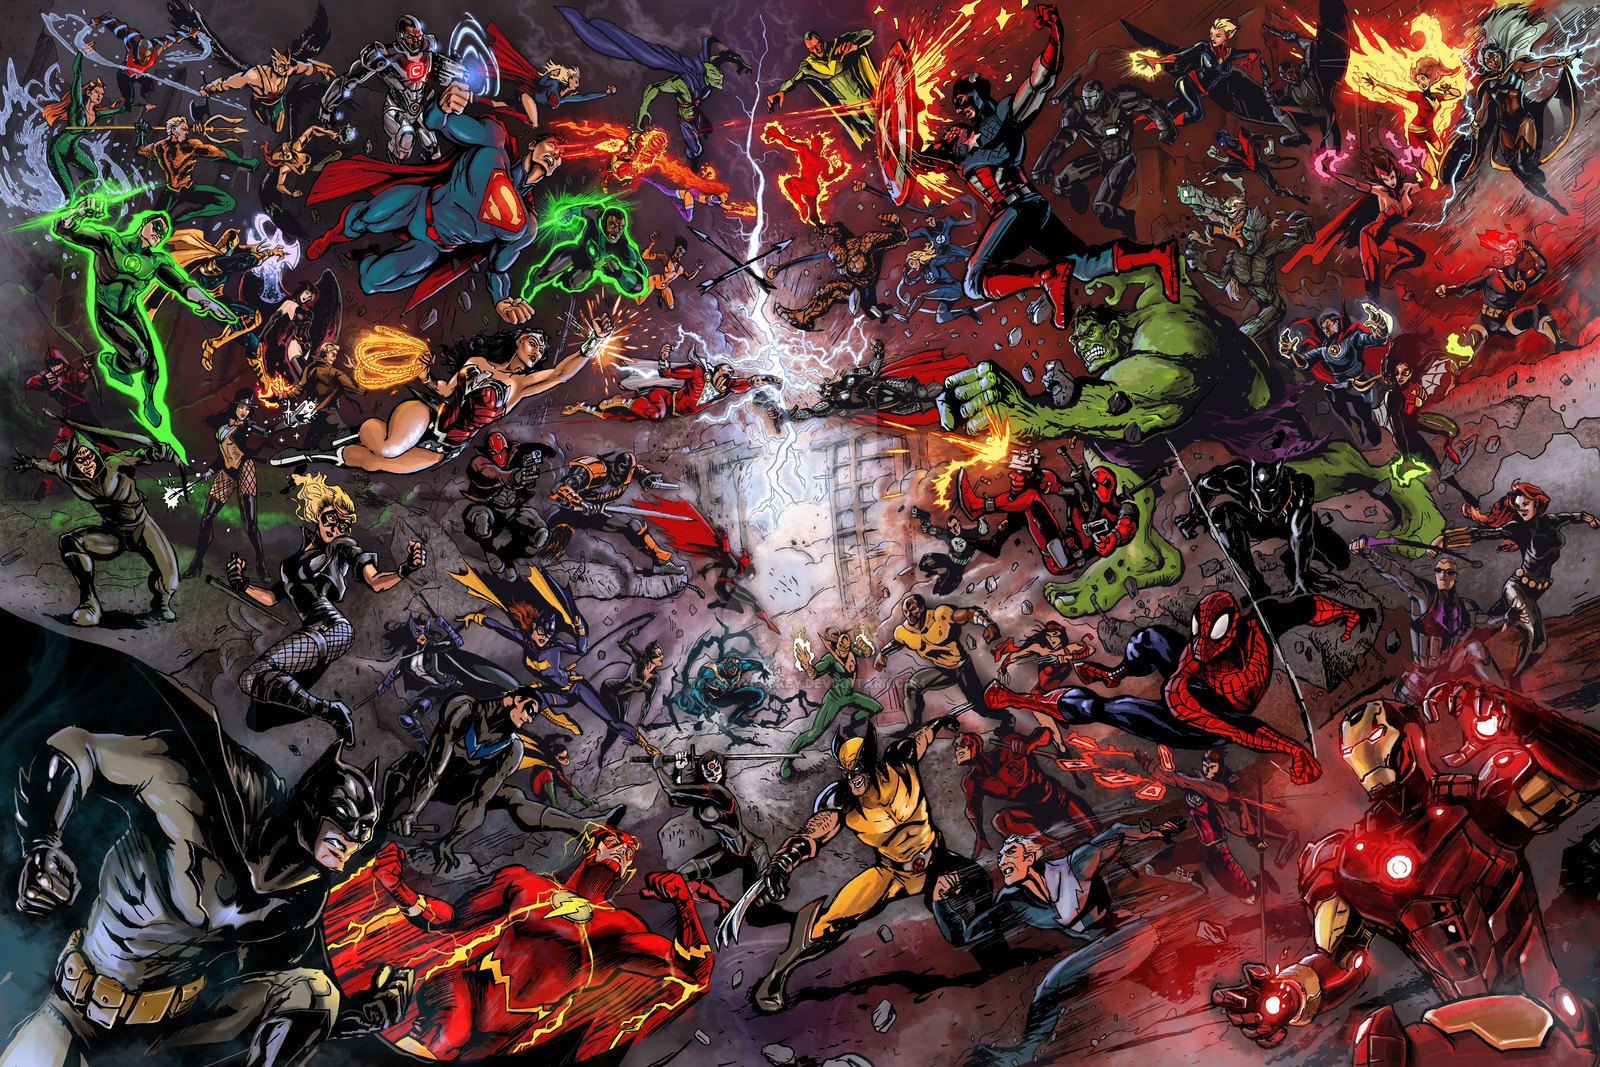 4954522-dc_vs_marvel__war_of_the_universes_by_timothylaskey-d8dliff